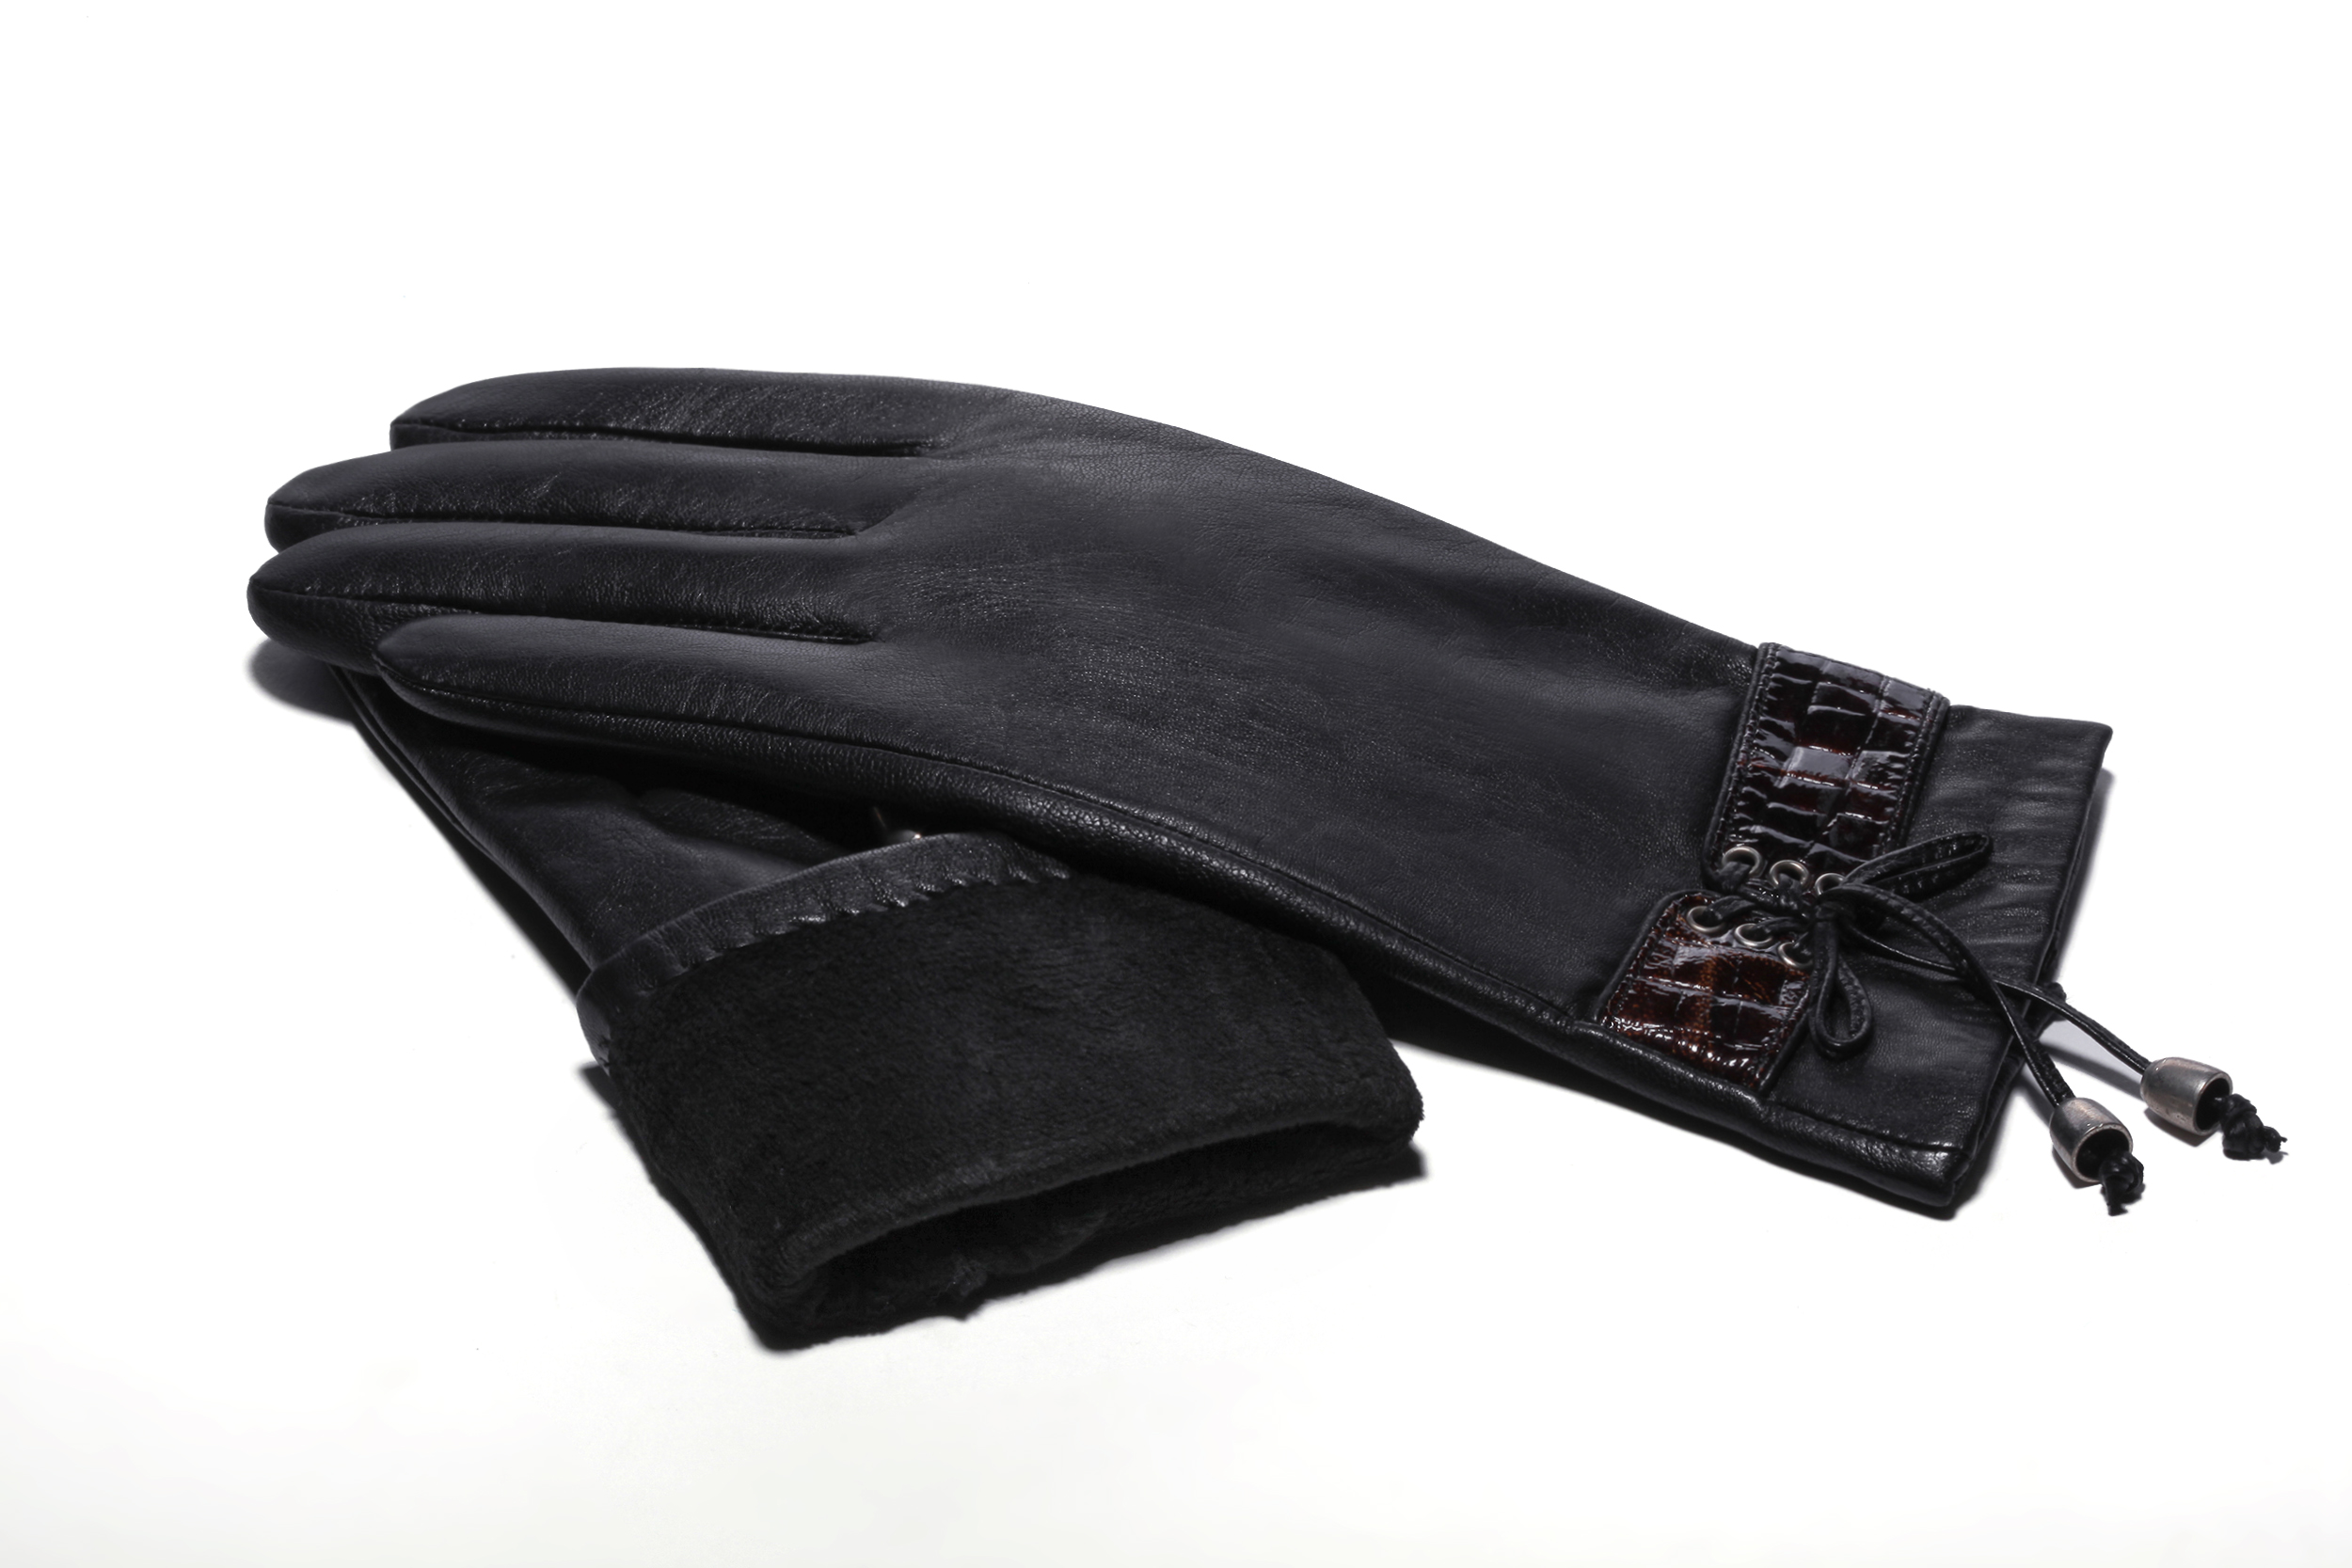 MoDA Women's Ms. Santiago Solid Leather Gloves with Tie up Animal print Cuff C0162 Black